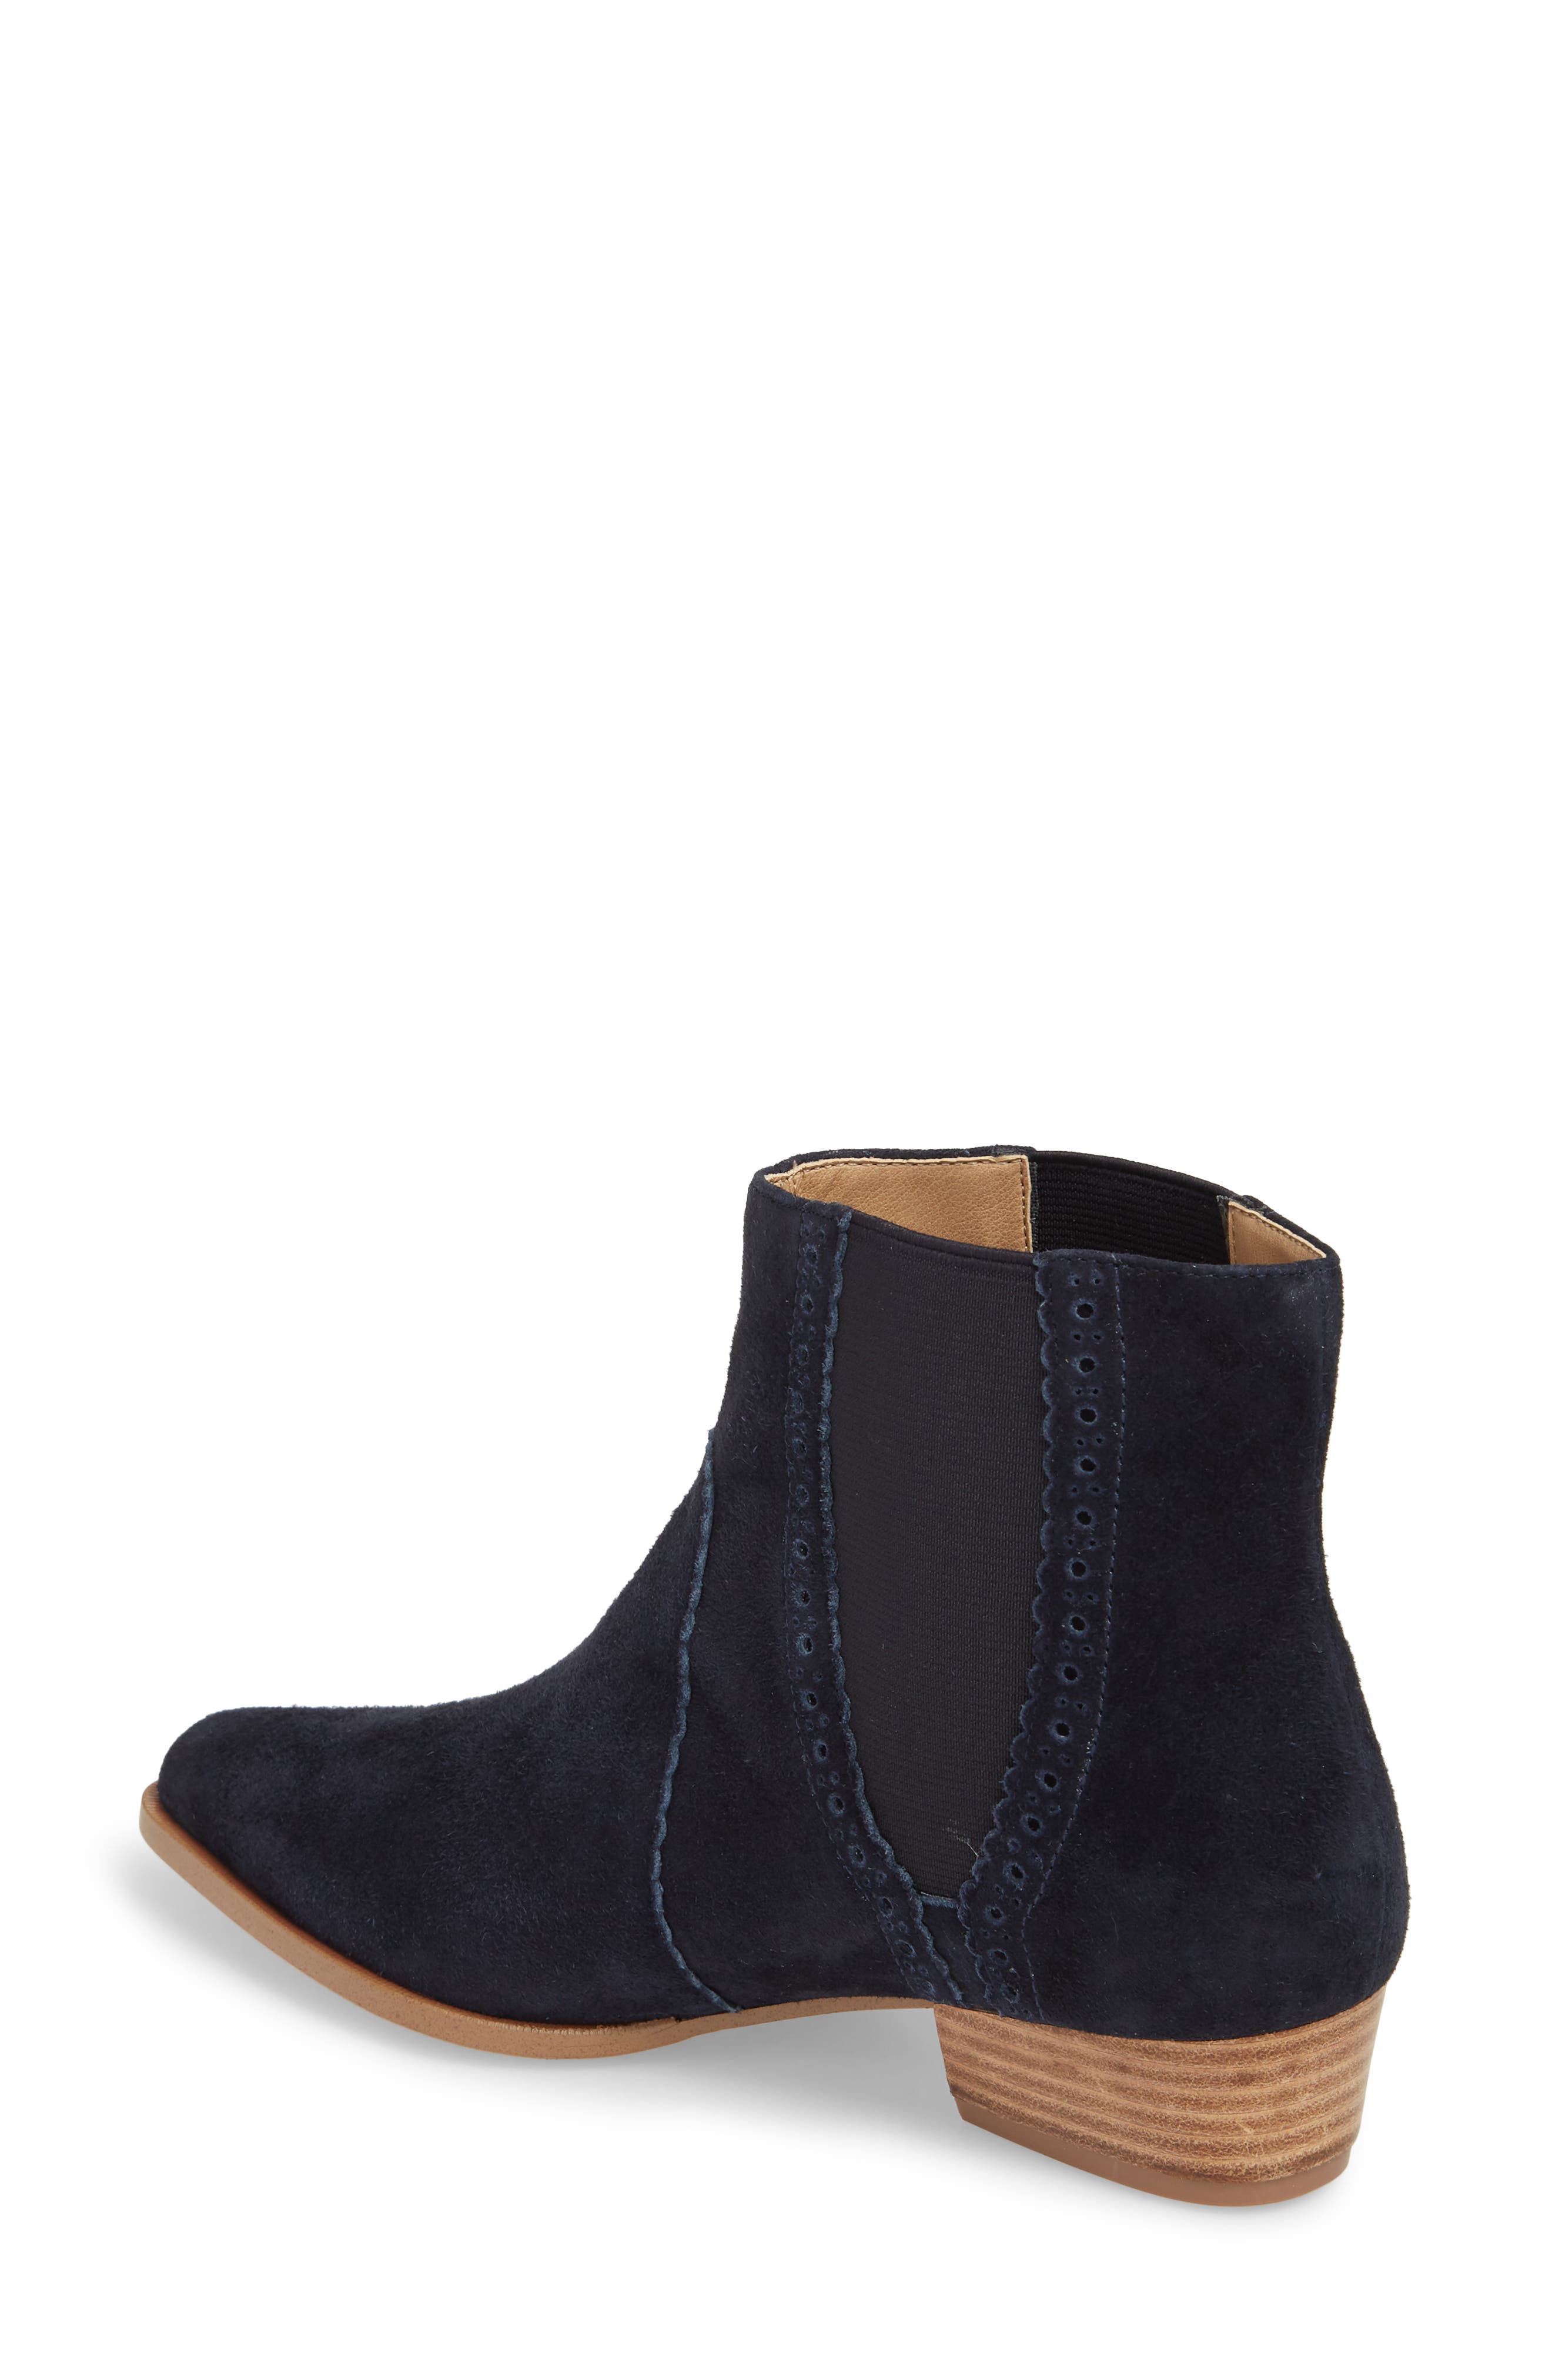 Mica Chelsea Bootie,                             Alternate thumbnail 2, color,                             SPACE CADET SUEDE